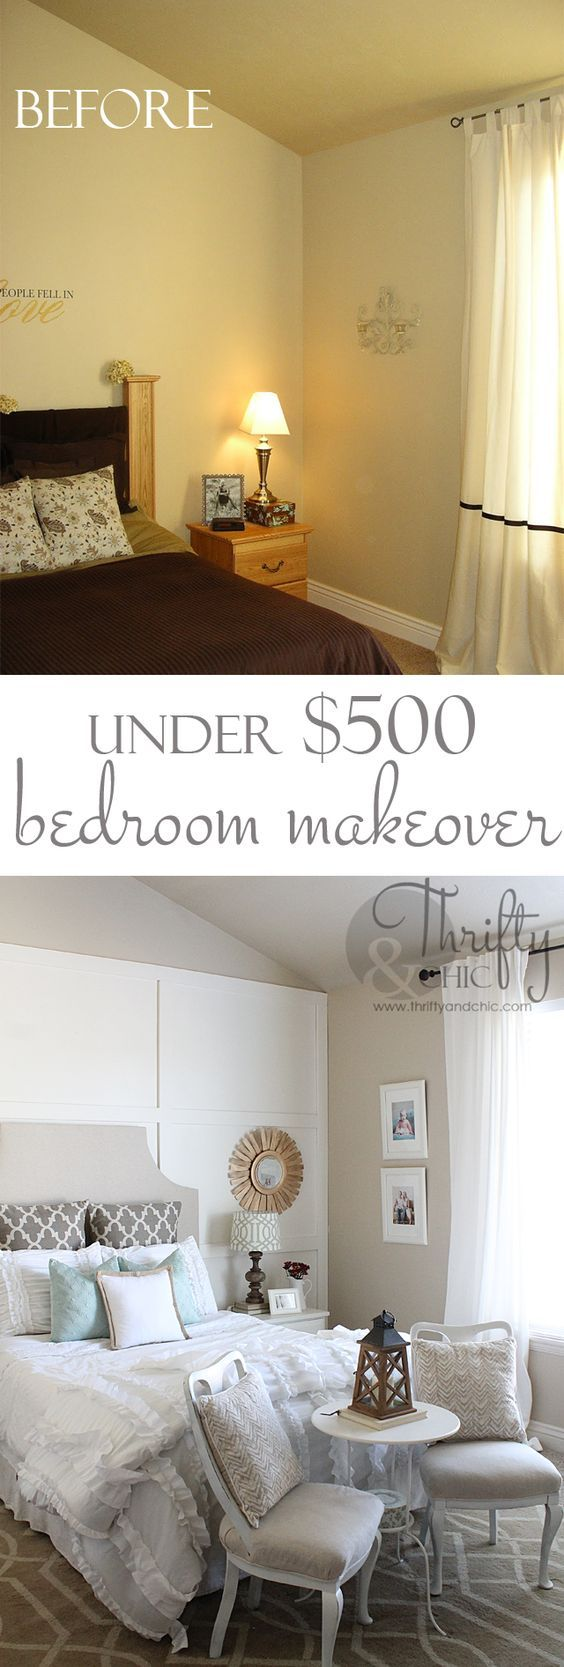 Master Bedroom Makeover For Under 500 Great DIY Ideas